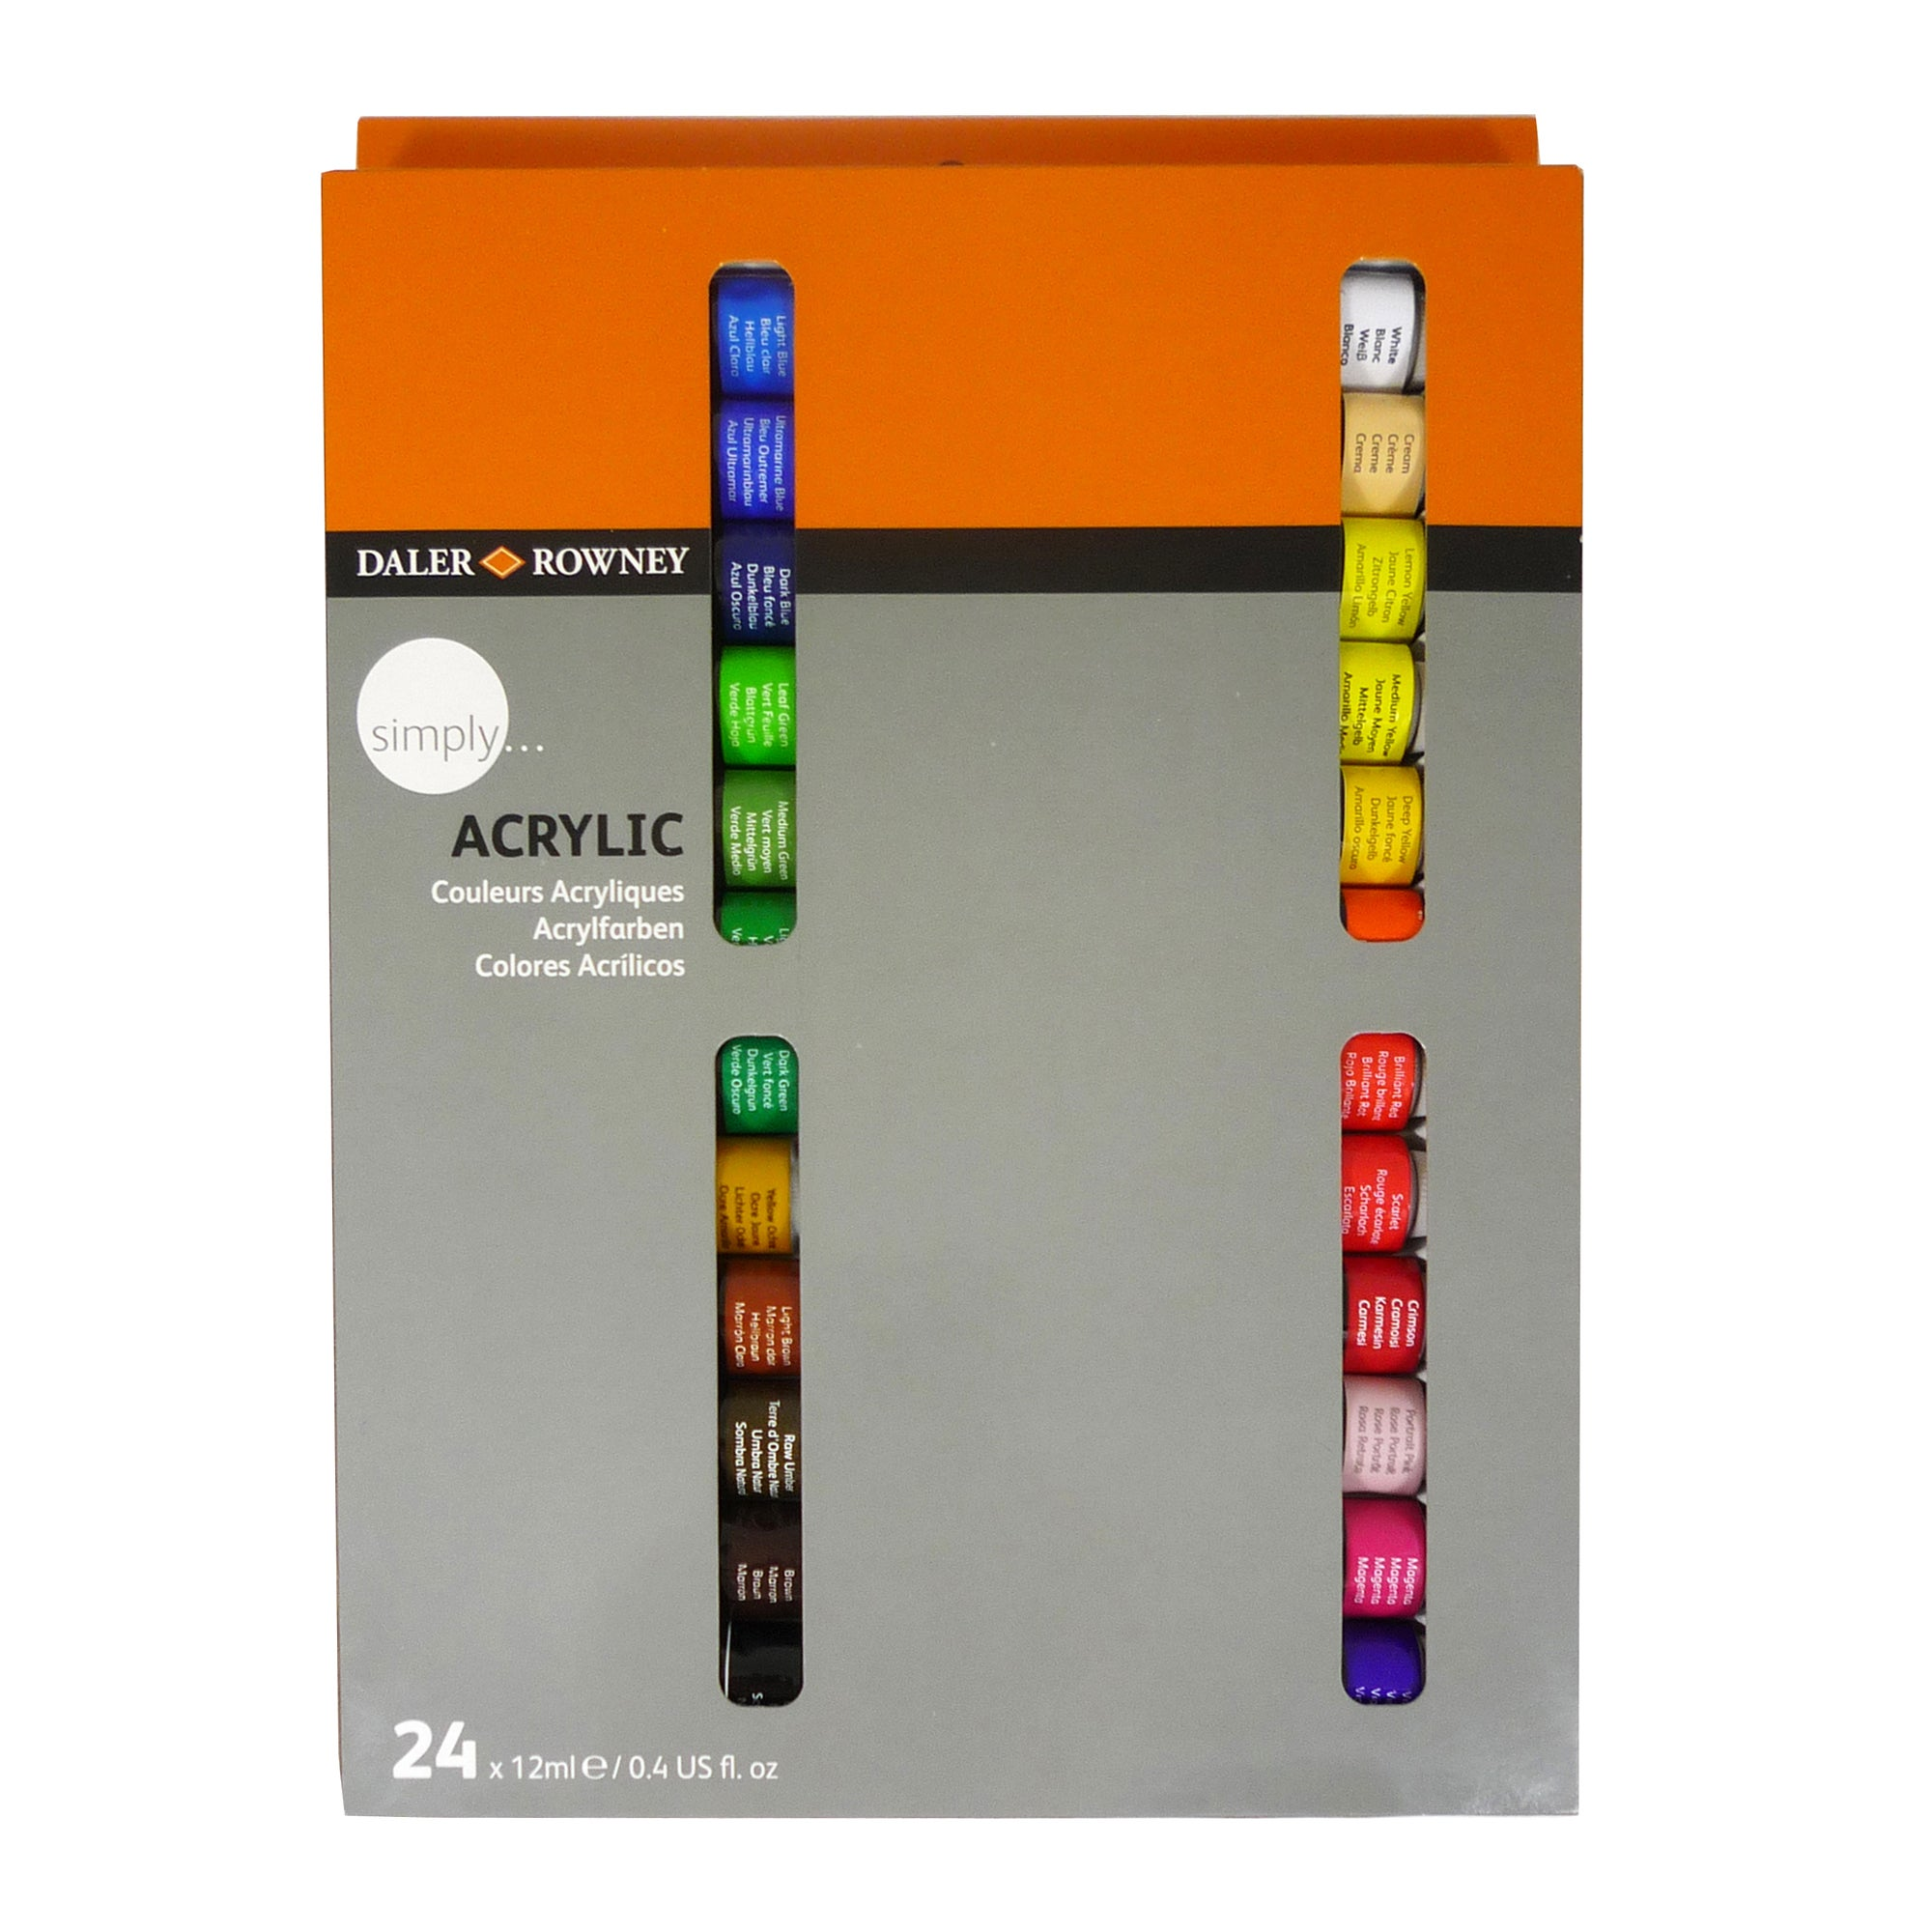 Daler Rowney Simply Set of 24 Acrylic Paints